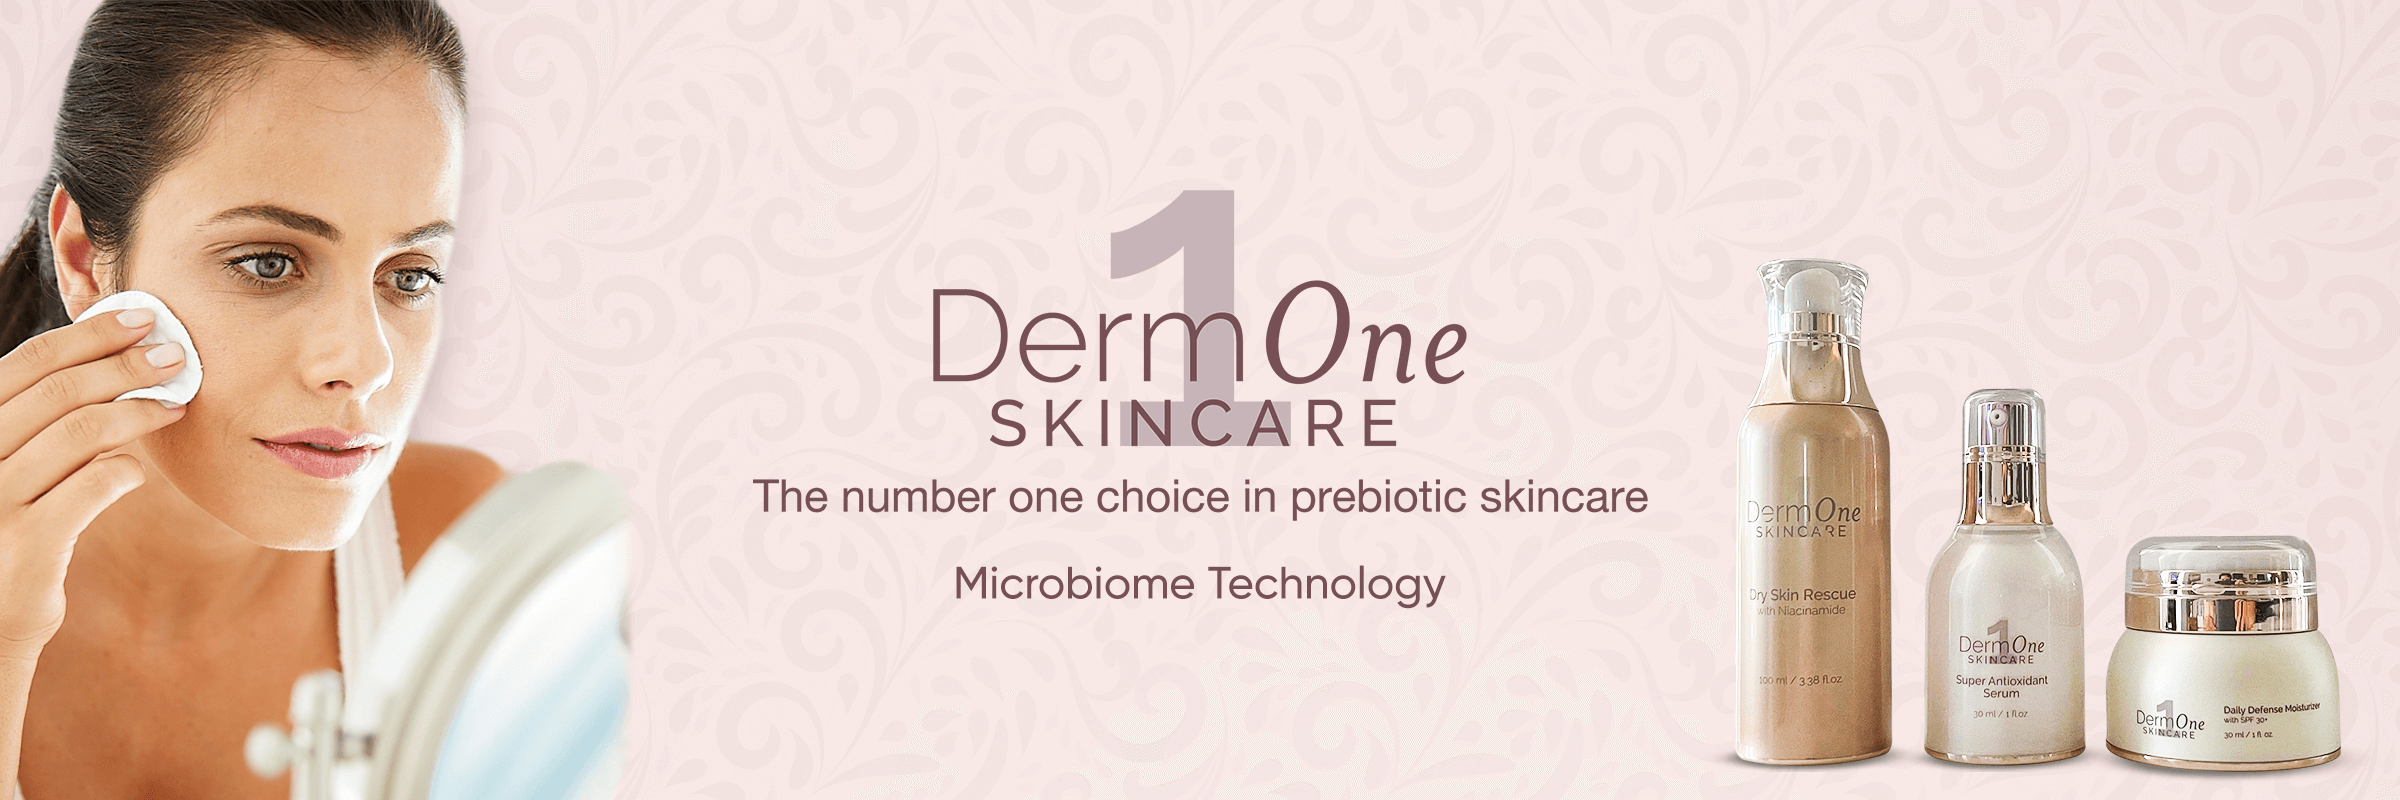 clean beauty products, clean beauty products online, skinsanity, Derm One skincare, the number one choice in prebiotic skincare, microbiome technology